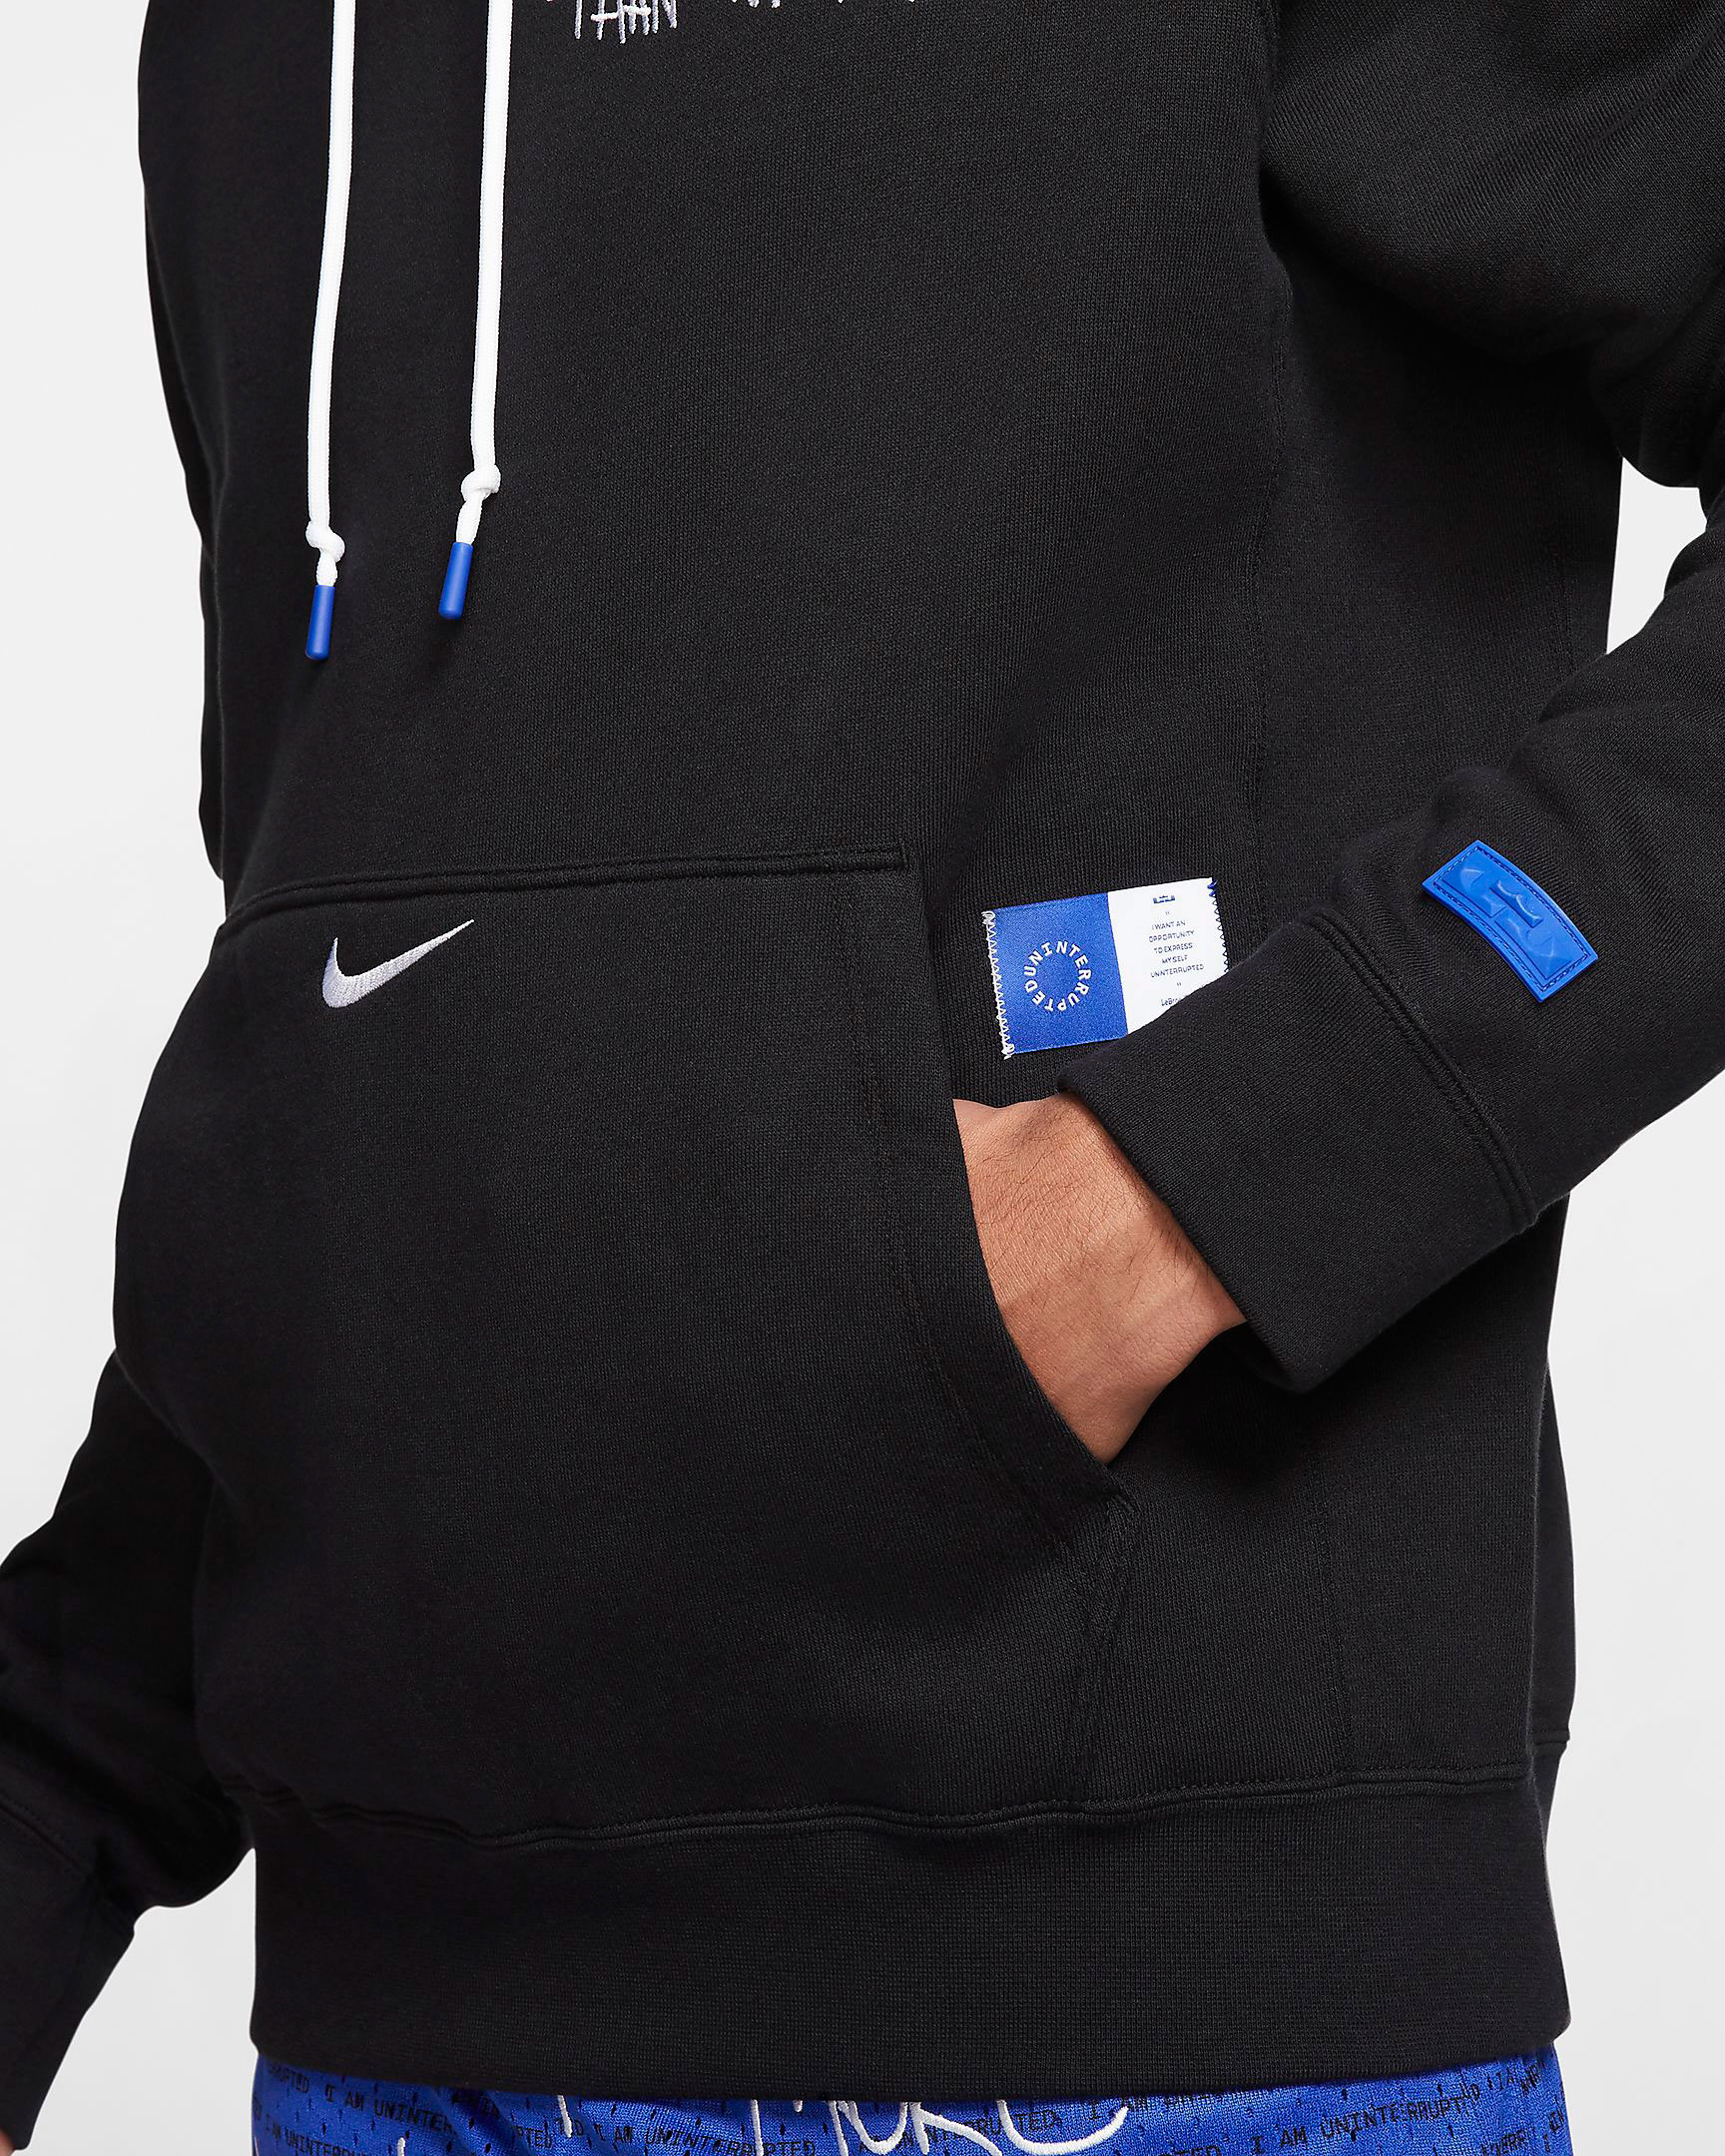 nike-lebron-17-more-than-an-athlete-uninterrupted-hoodie-3